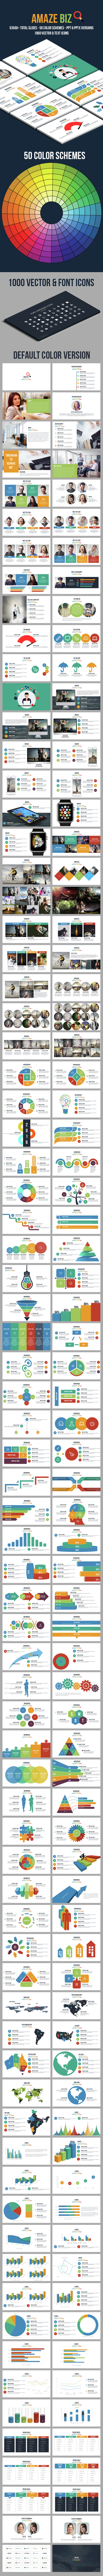 Amaze Biz Powerpoint Presentation Template - Business PowerPoint Templates